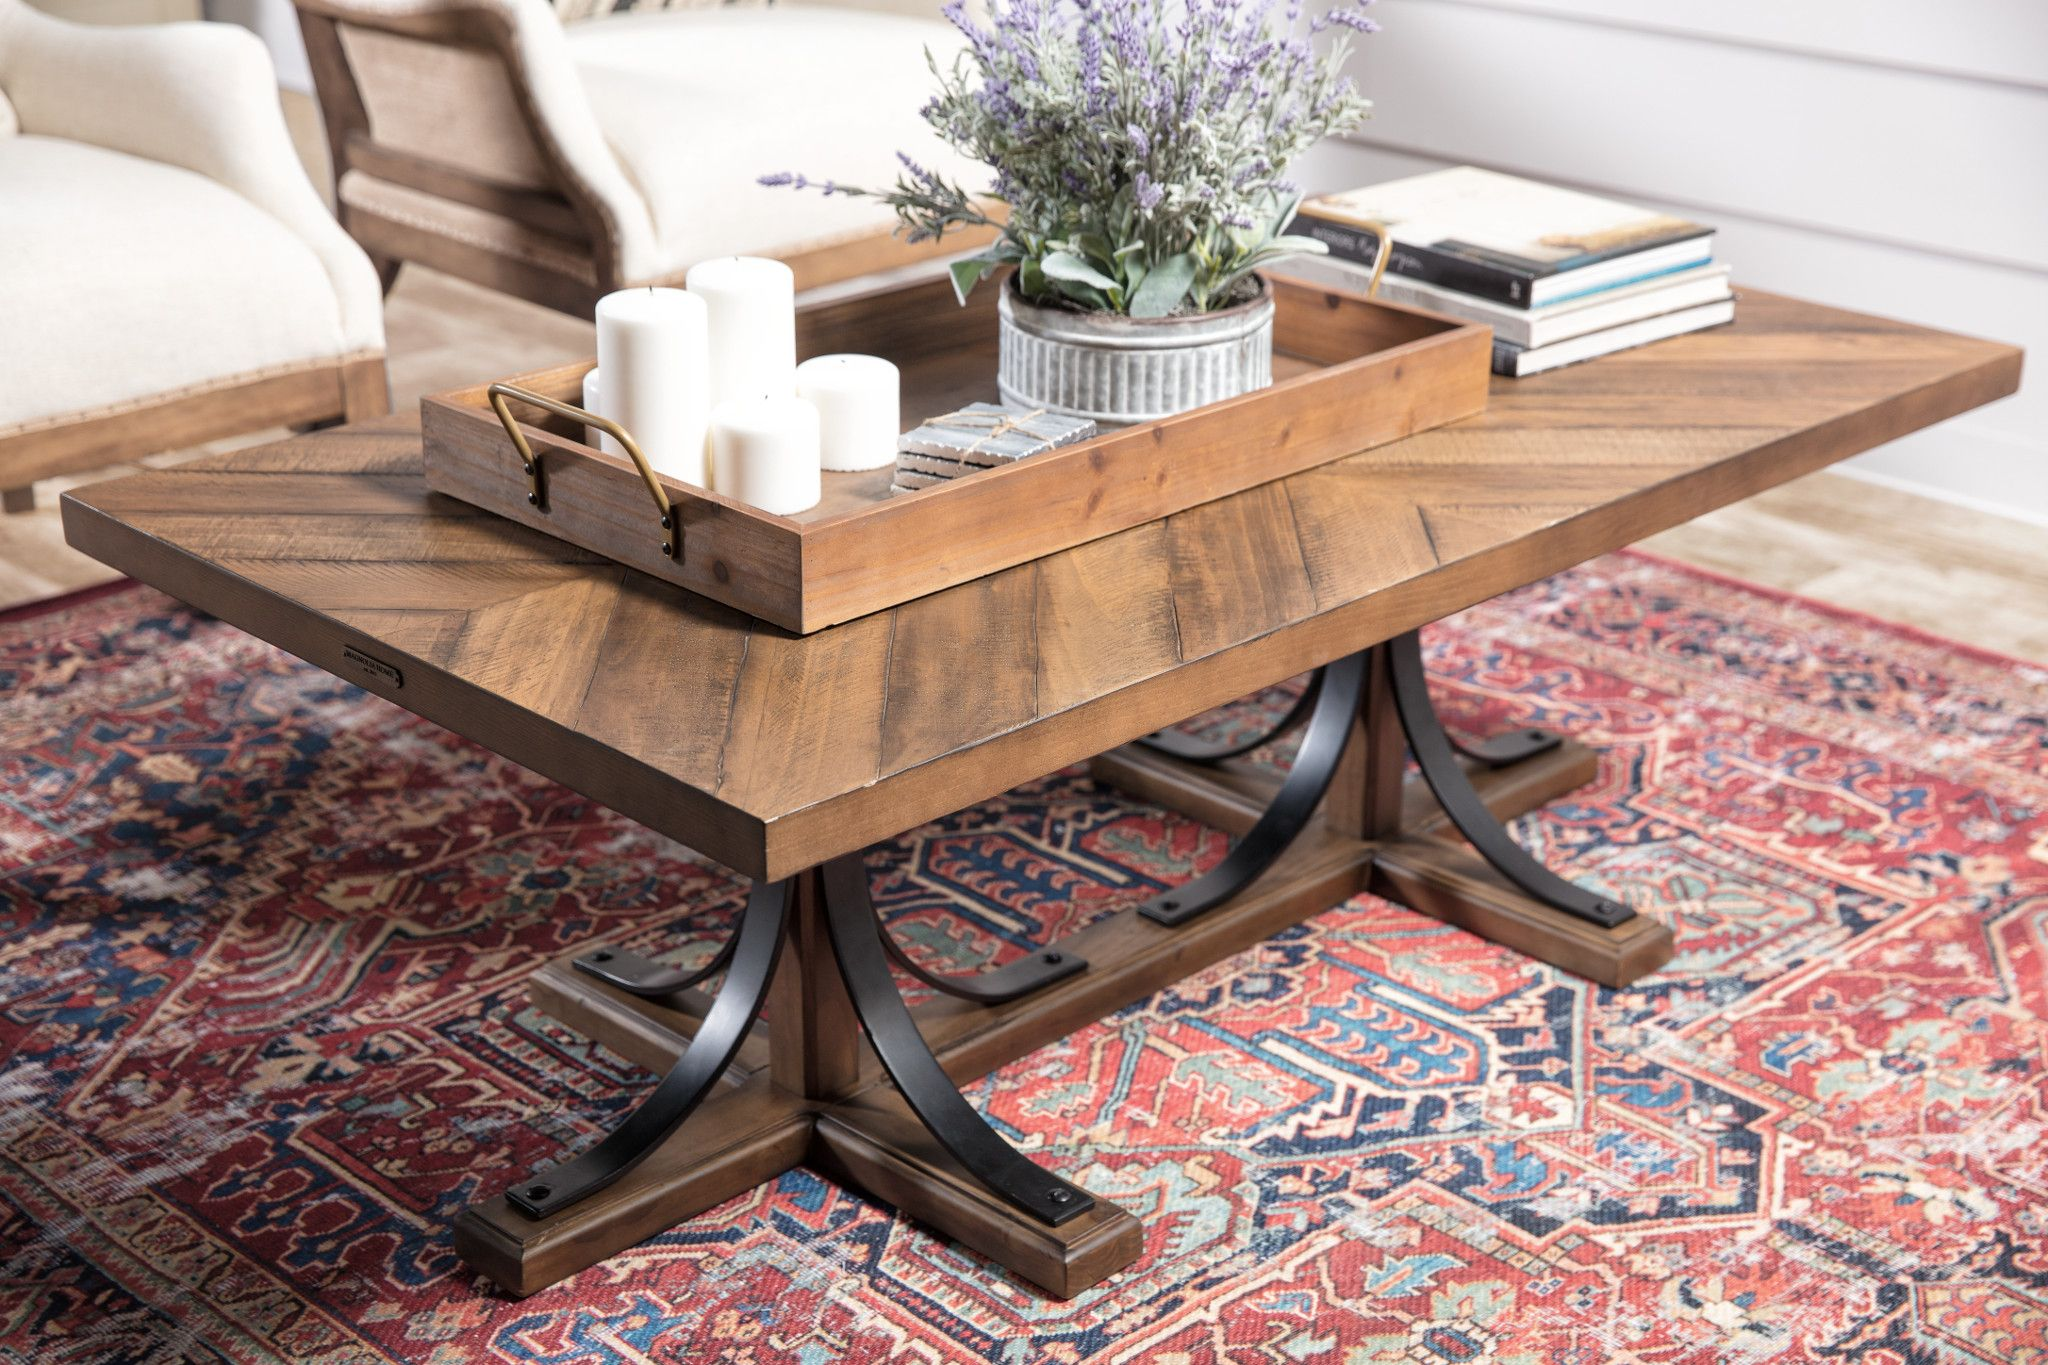 7 5 X9 5 Rug Magnolia Home Lucca Red Blue By Joanna Gaines Coffee Table Farmhouse Farmhouse Coffee Table Decor Magnolia Homes [ 1365 x 2048 Pixel ]